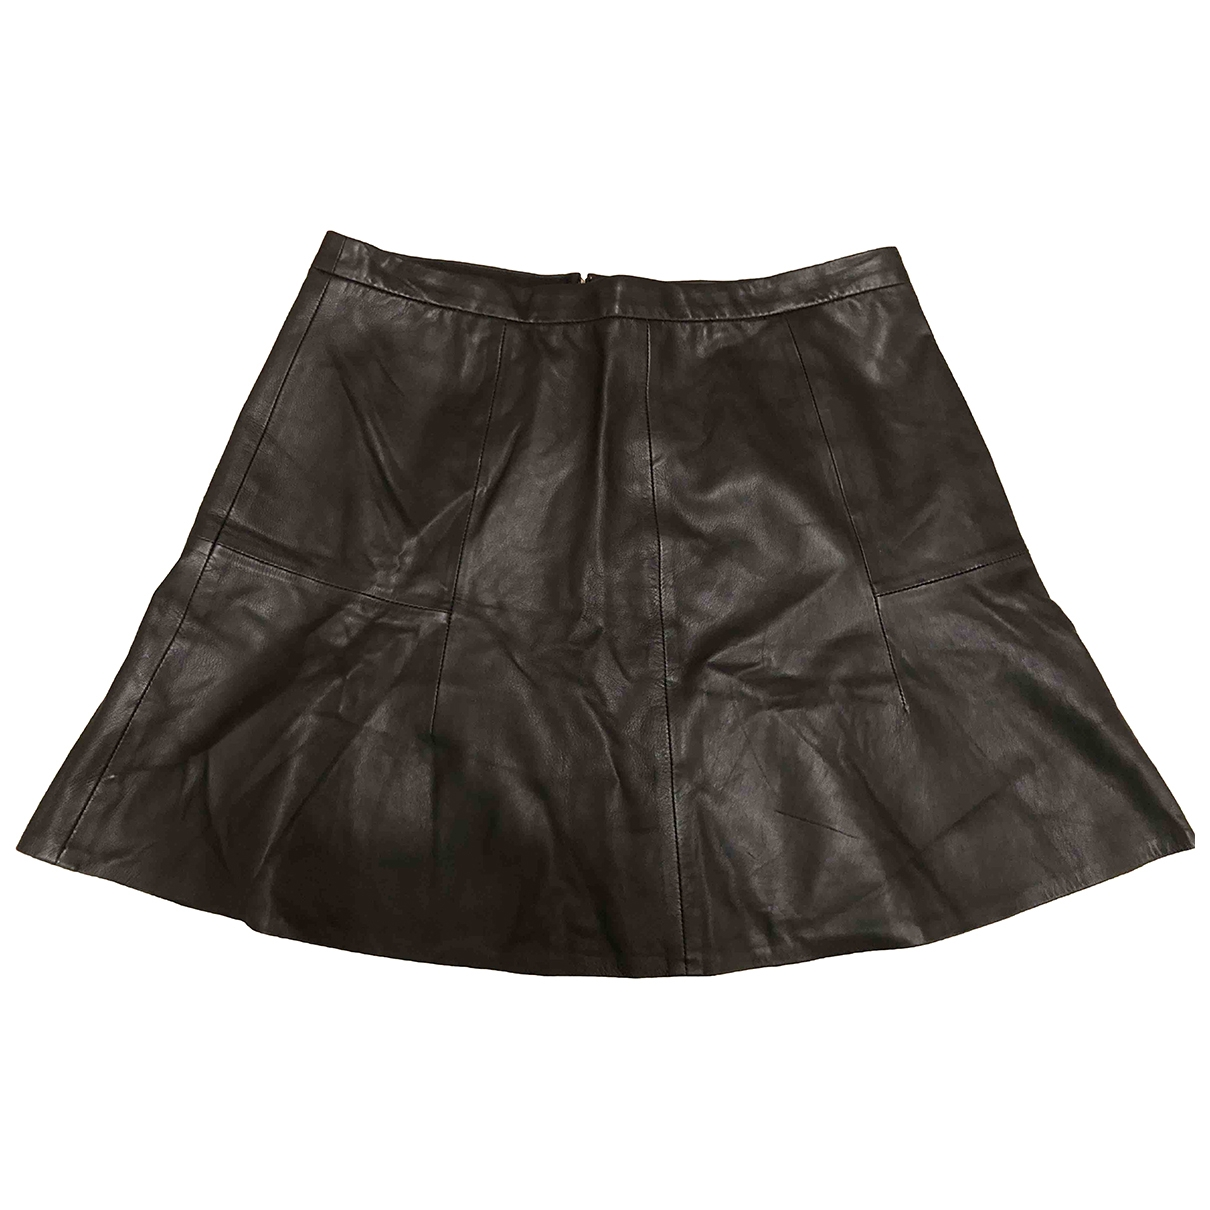 J.crew \N Black Leather skirt for Women 6 US